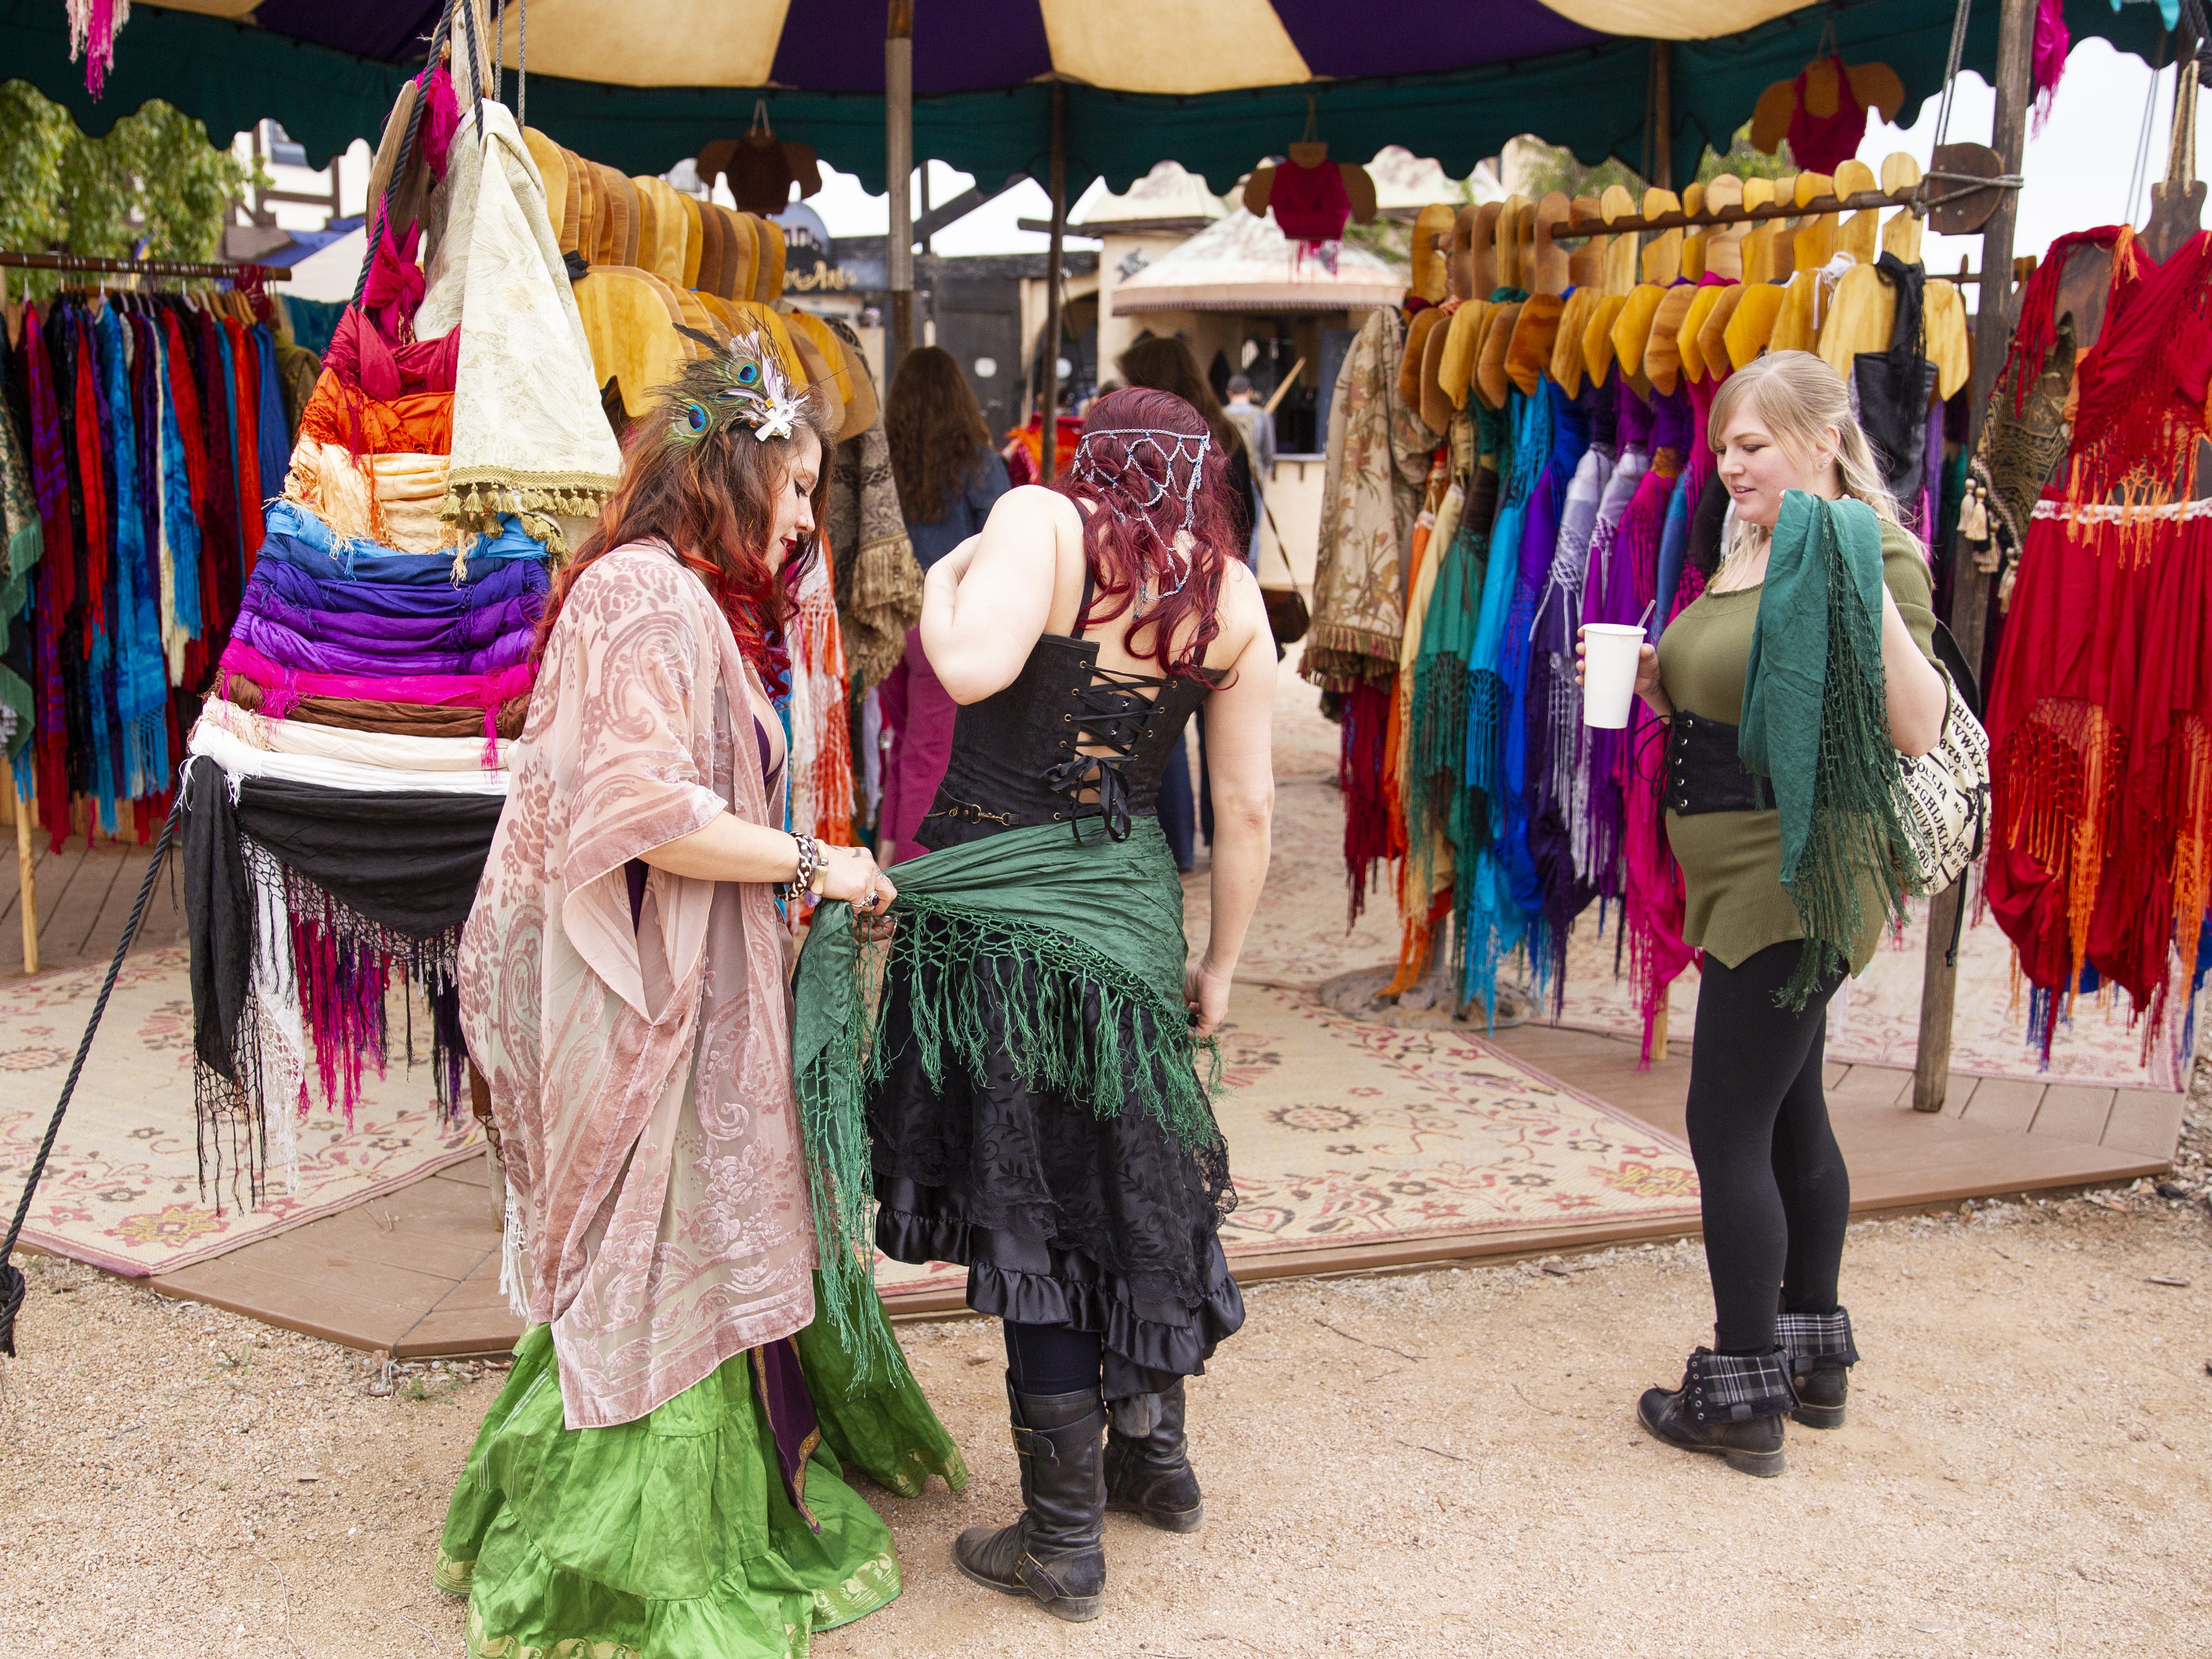 Jessica Cowan, left, and Kaila Harris, right, help Krystina Nation try on a shawl at the Arizona Renaissance Festival 2019 on Feb. 9, 2019 in Gold Canyon, Ariz.